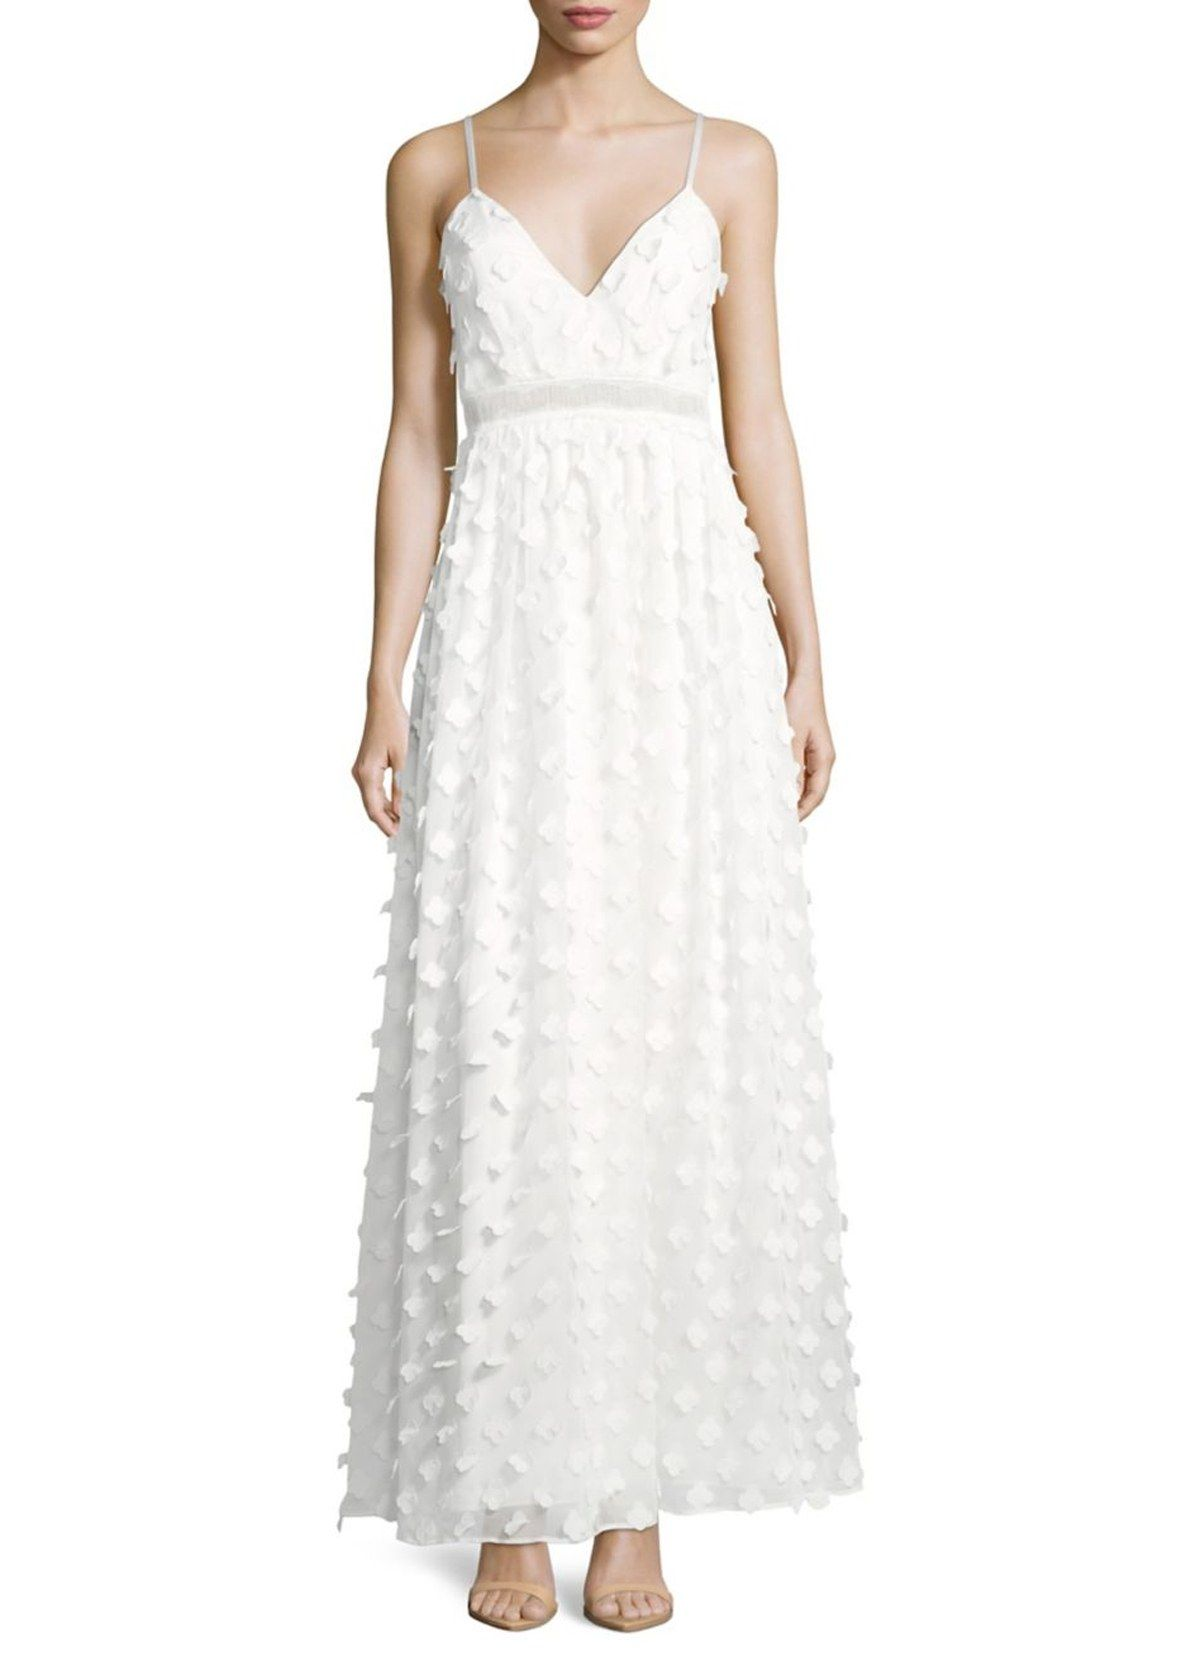 Department Store Wedding Dresses   30 Wedding Dresses You Can Buy At A Department Store Pinterest